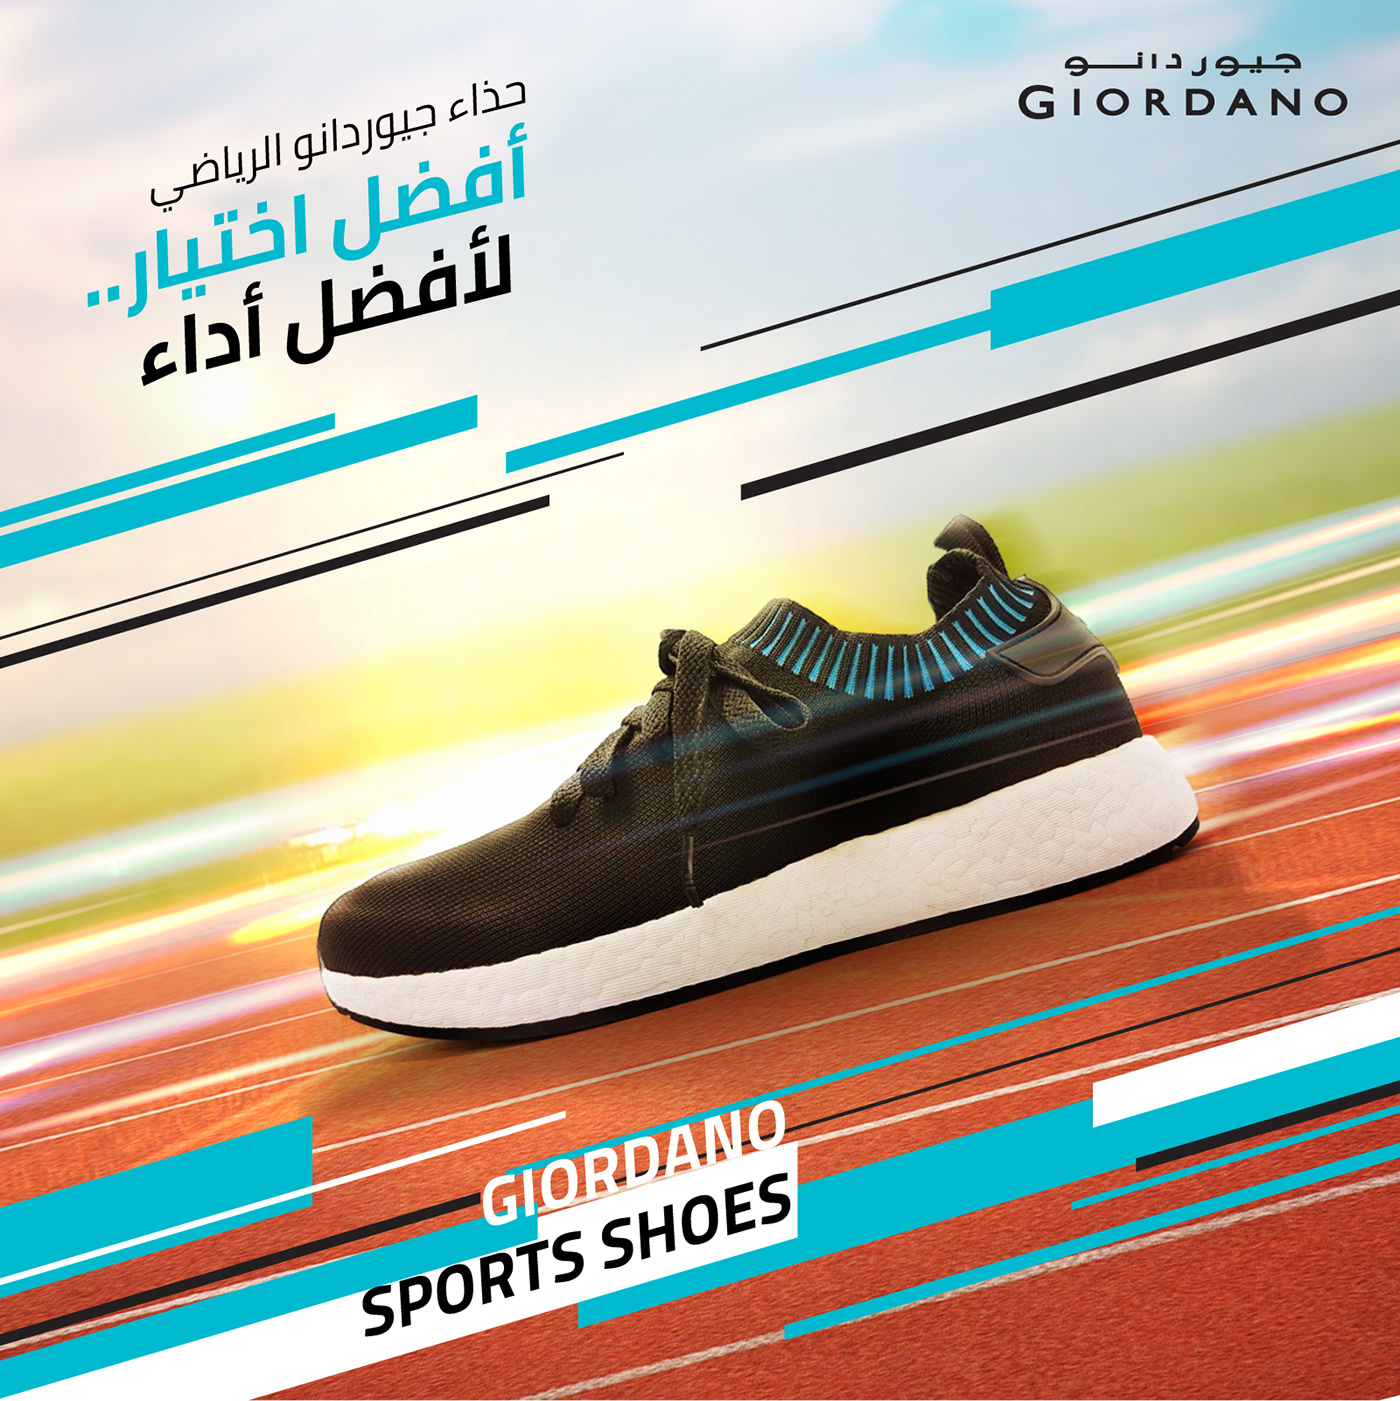 3c4d540cc Social Media Content - Giordano Fashion on Behance